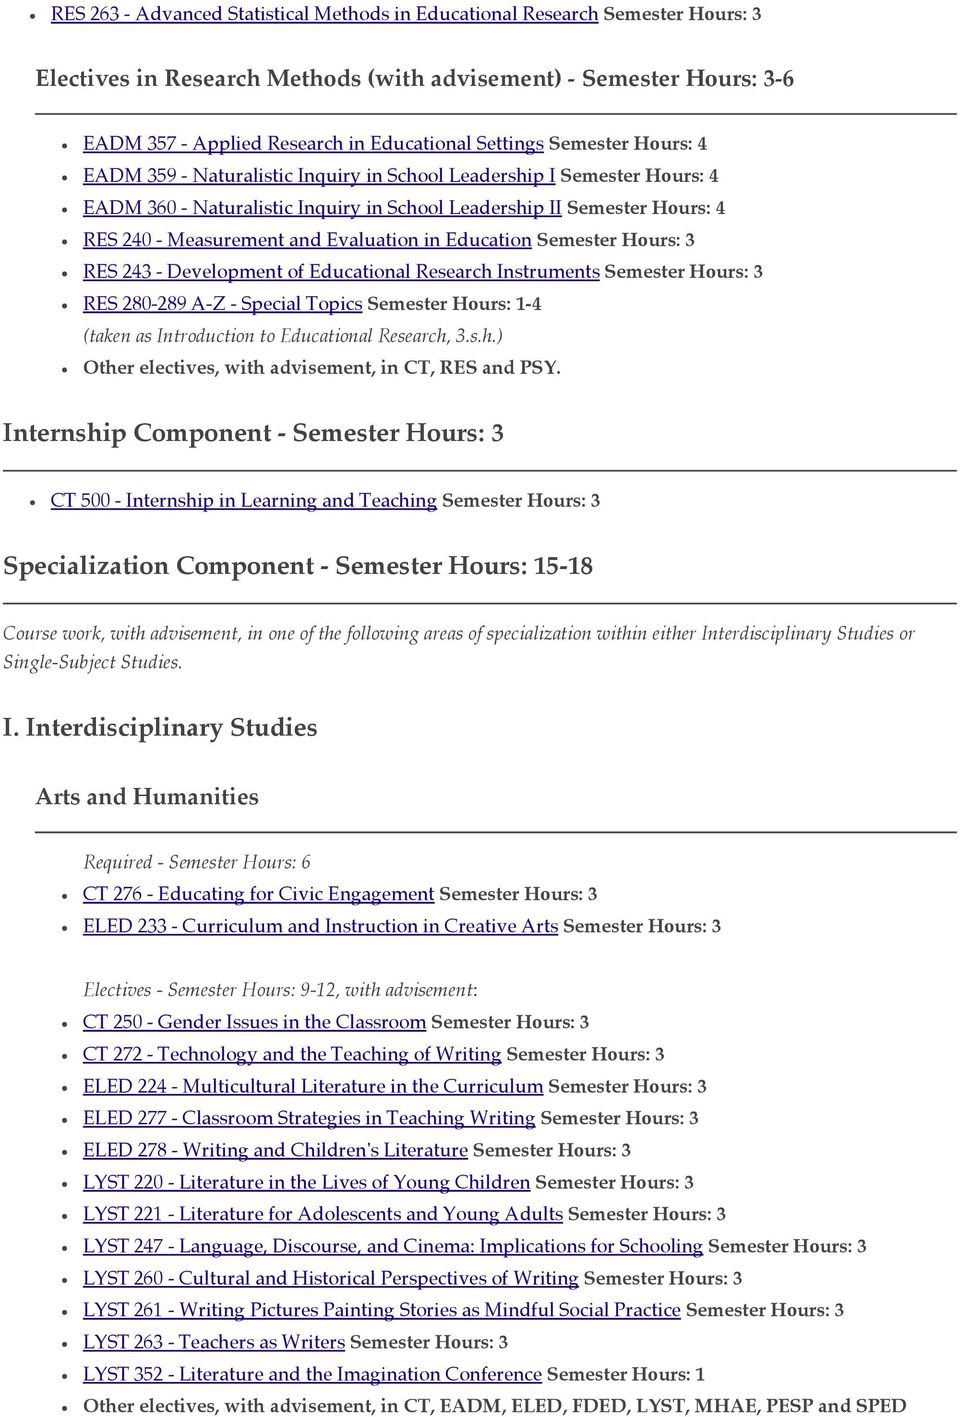 Development of Educational Research Instruments RES 280-289 A-Z - Special Topics Semester Hours: 1-4 (taken as Introduction to Educational Research, 3.s.h.) Other electives, with advisement, in CT, RES and PSY.